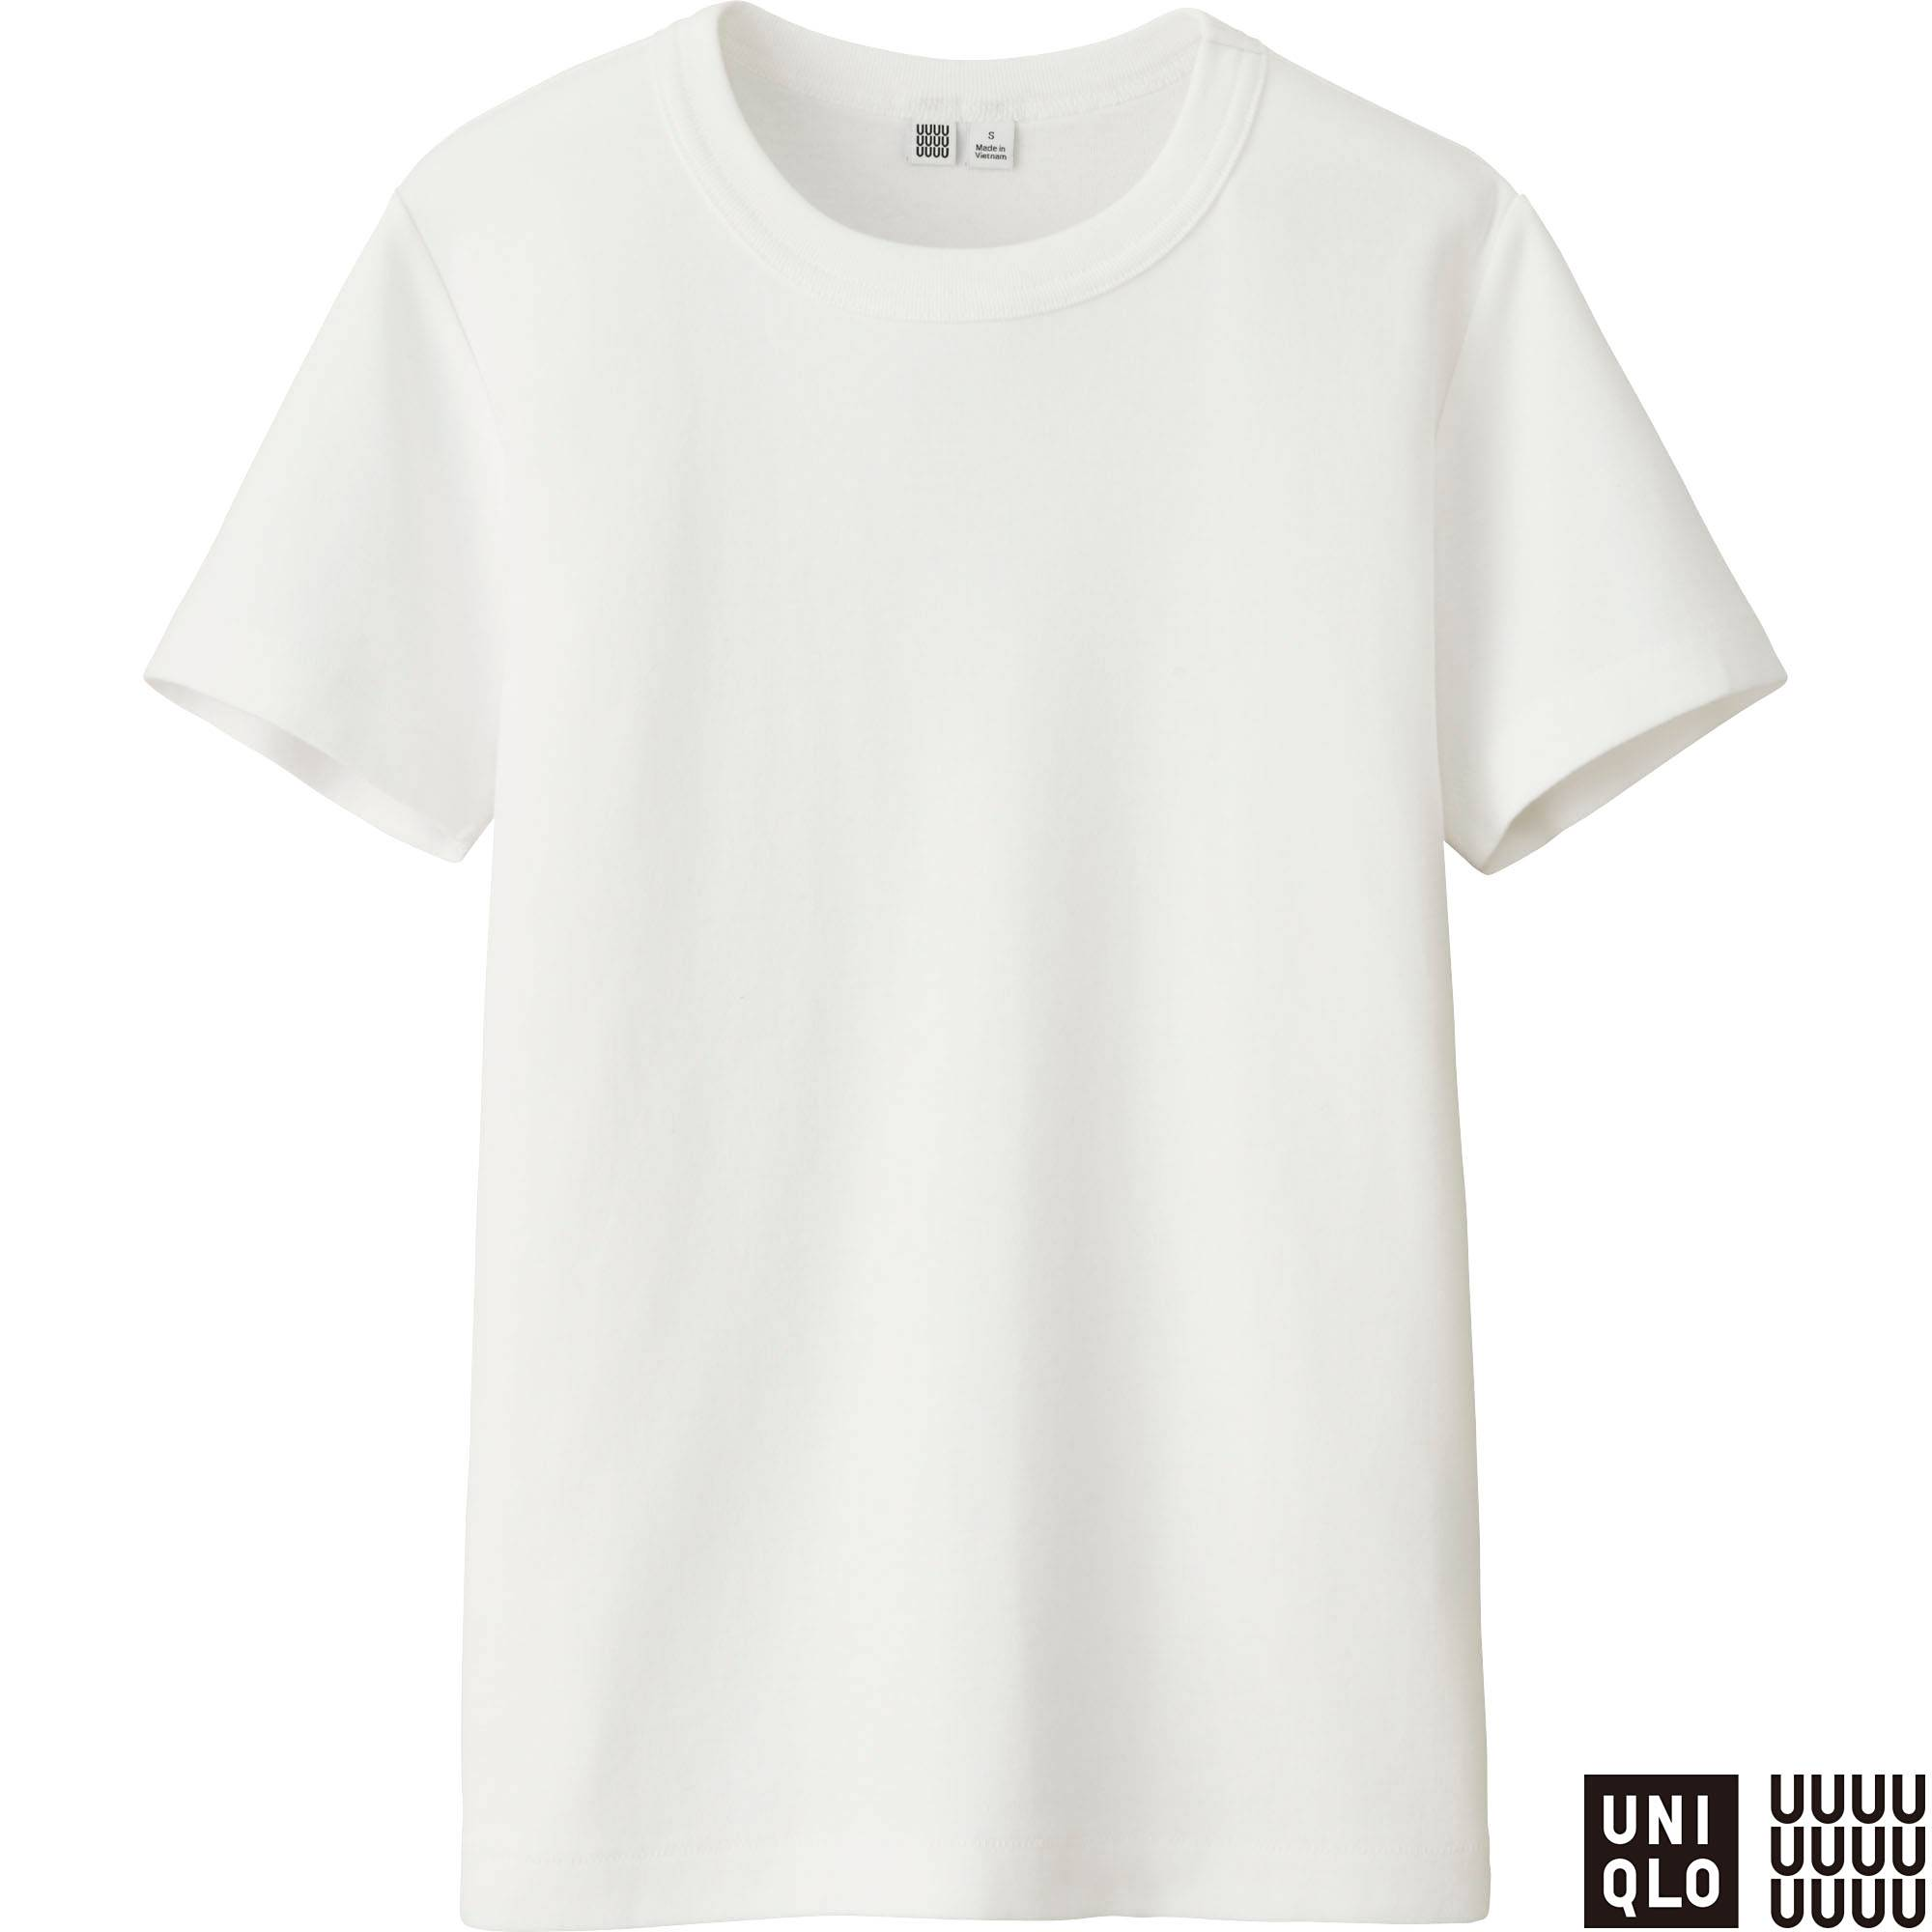 best white t shirts gap reformation everlane hanes